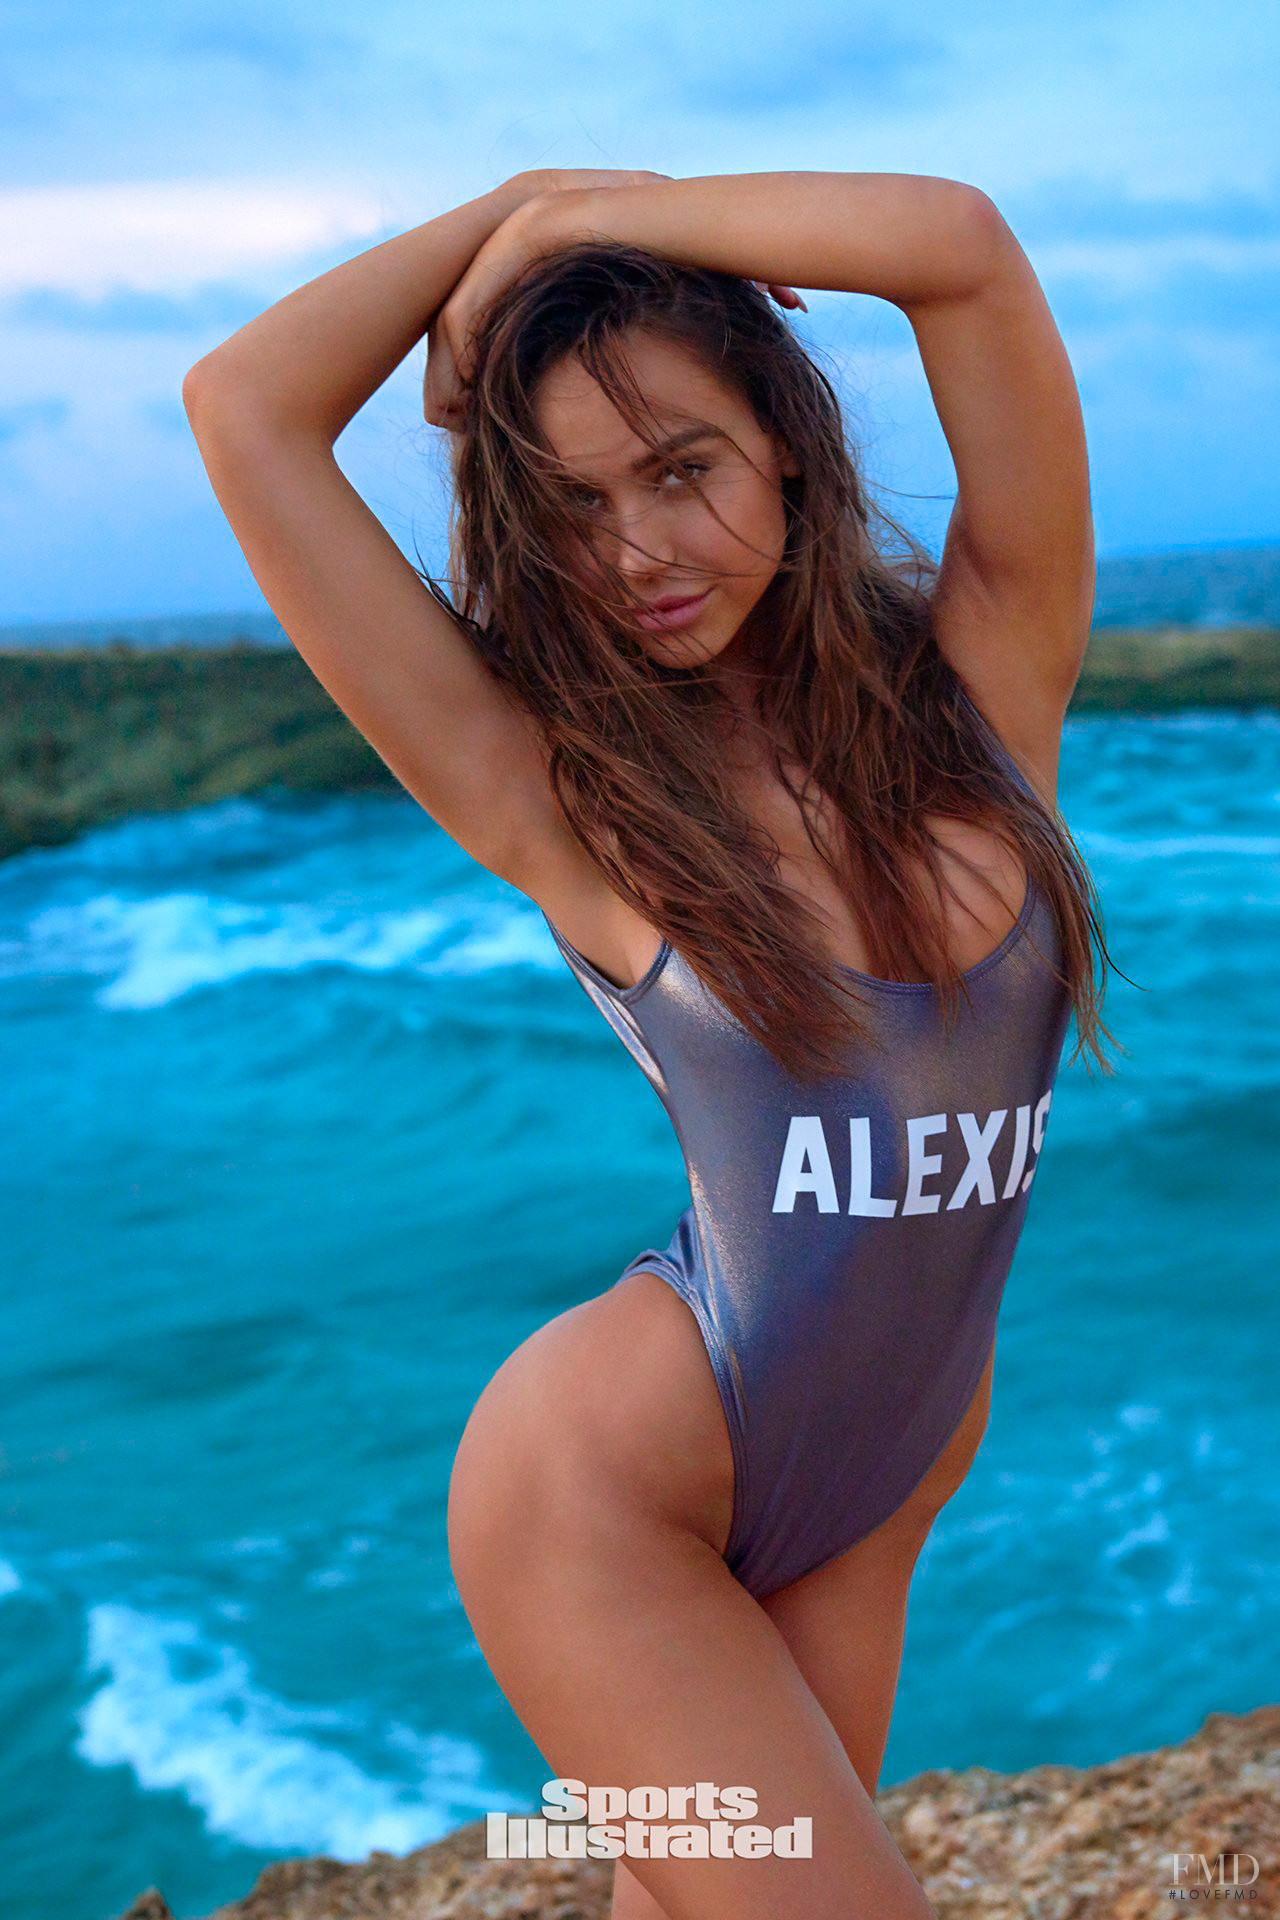 15faab3954e Alexis Ren in Sports Illustrated Swimsuit with - (ID 52355 ...